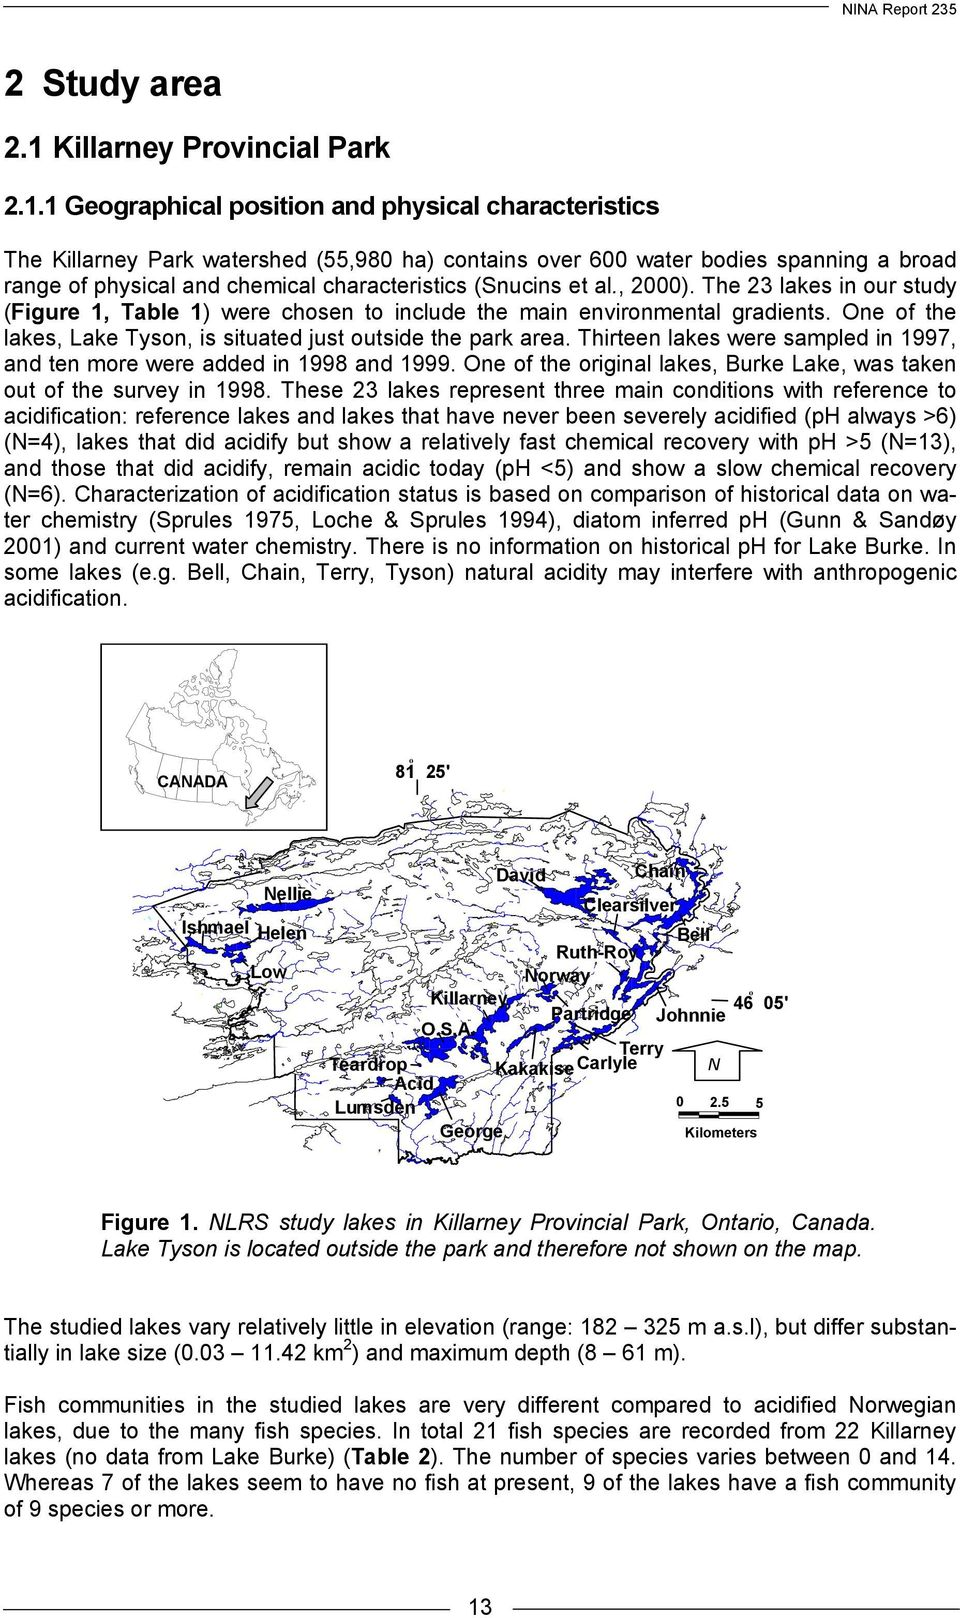 1 Geographical position and physical characteristics The Killarney Park watershed (55,980 ha) contains over 600 water bodies spanning a broad range of physical and chemical characteristics (Snucins